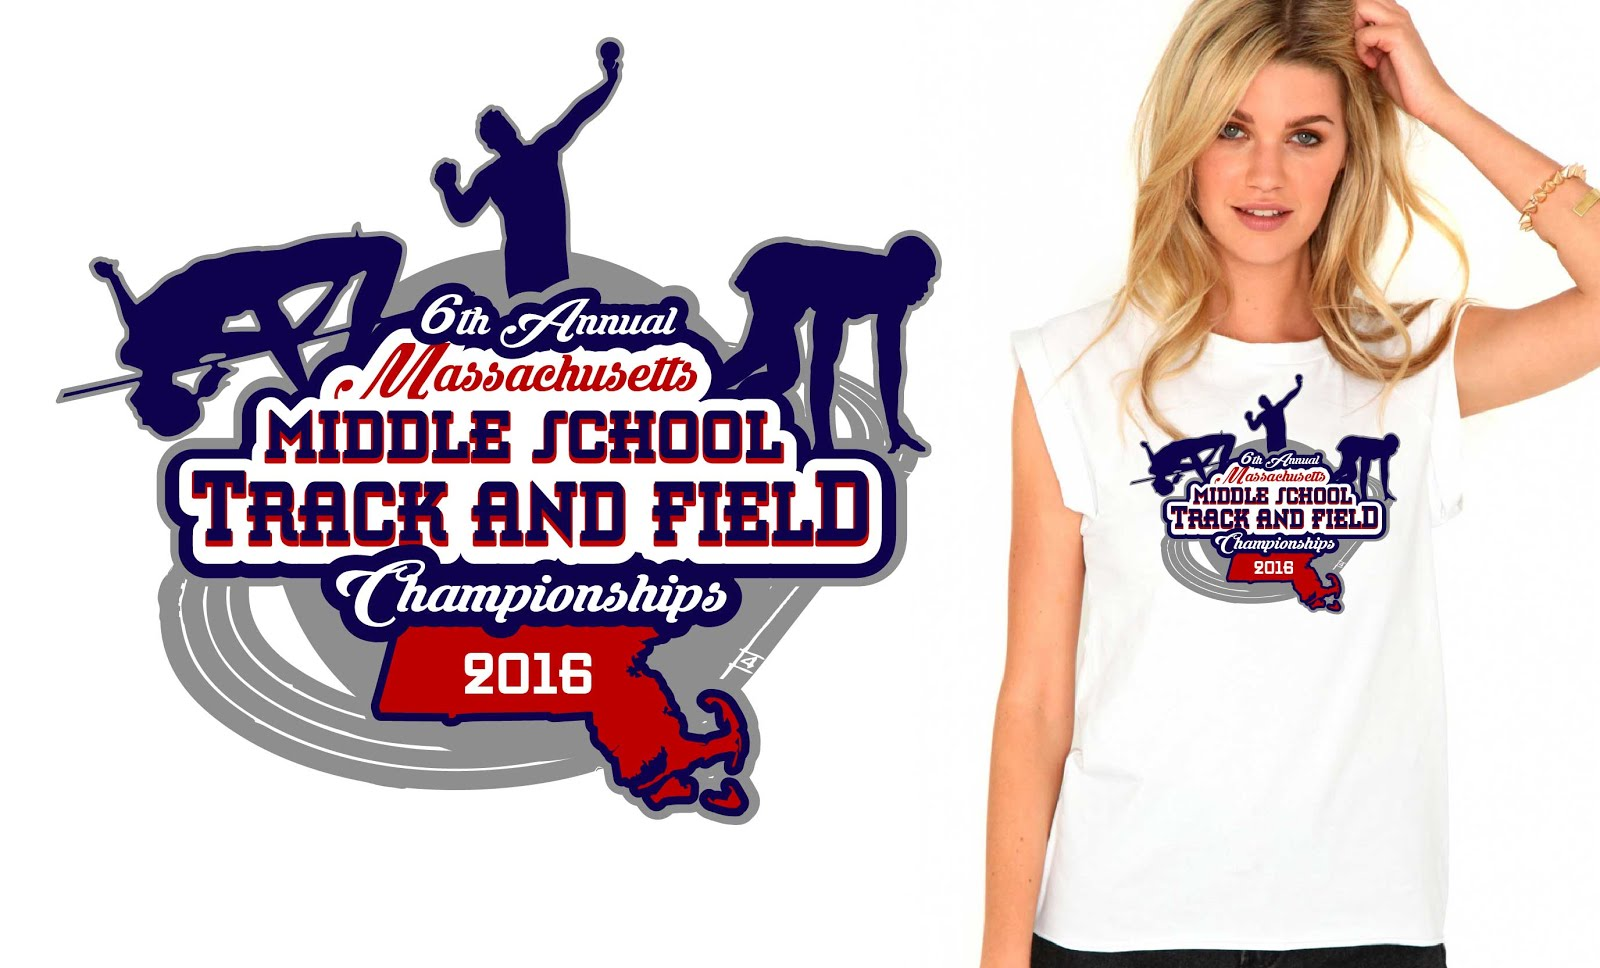 Track and field logo designs